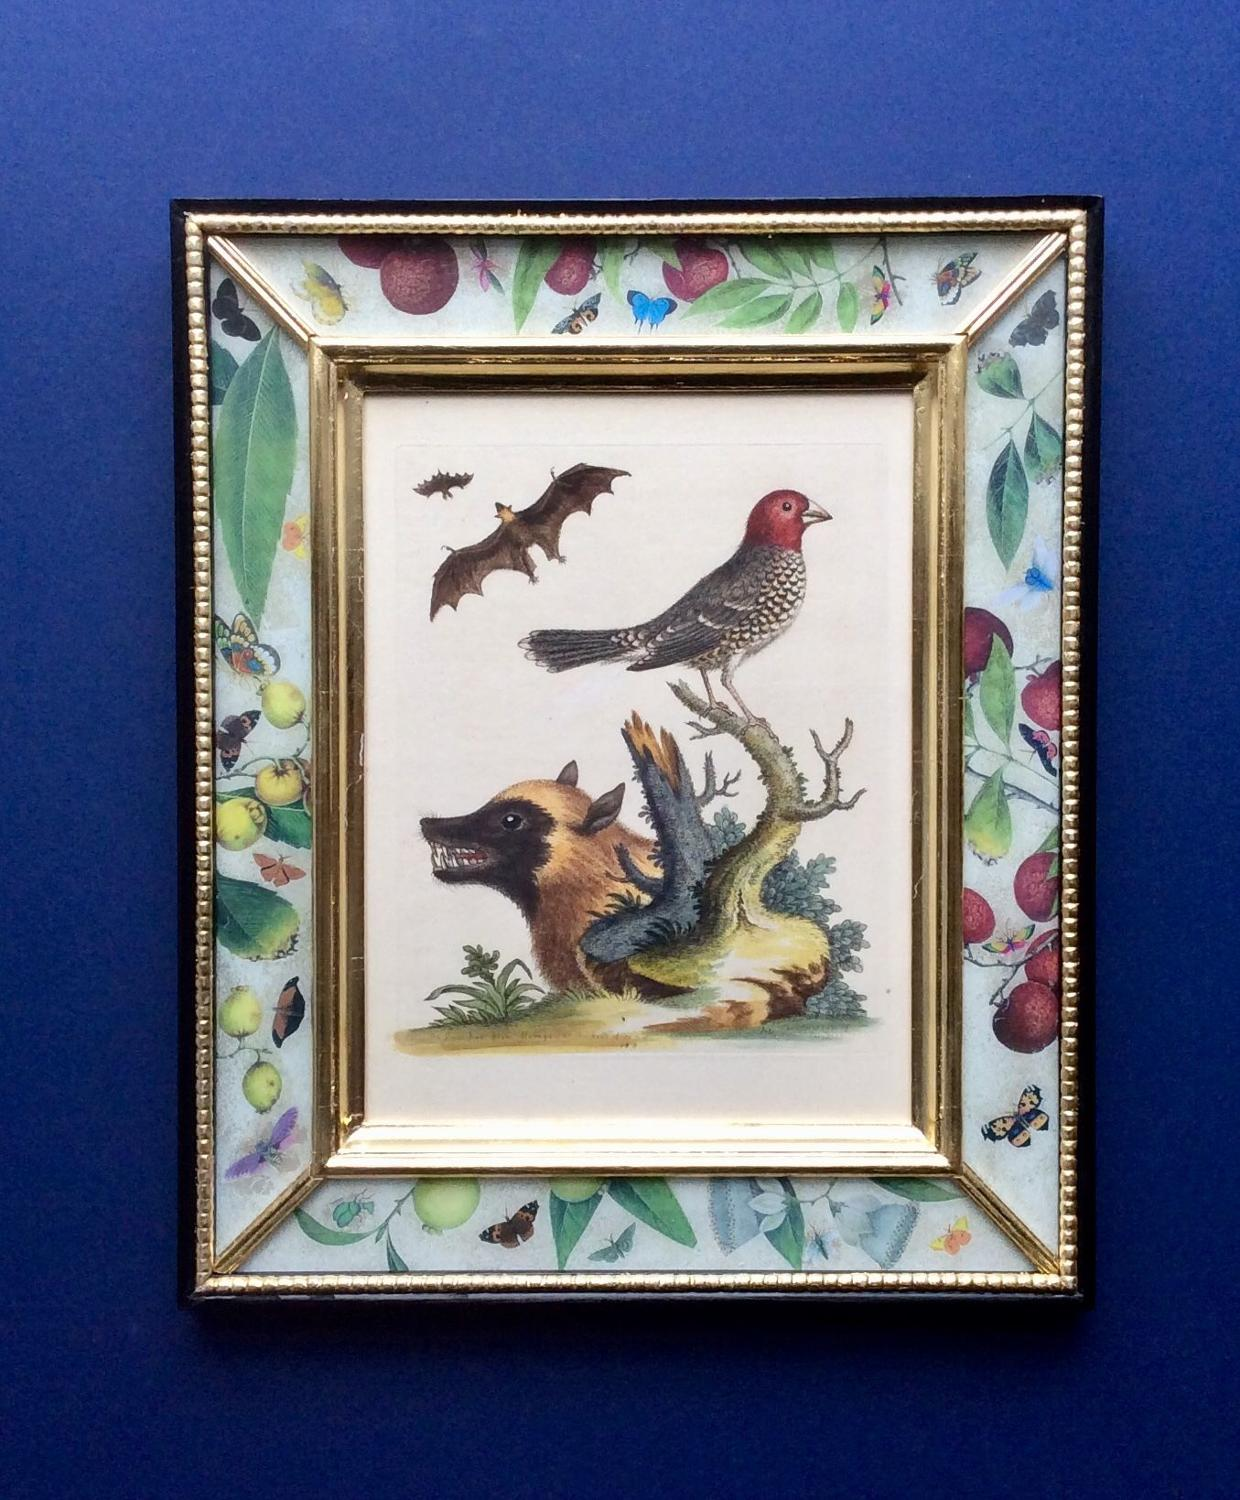 George Edwards 18th century Engravings of Birds